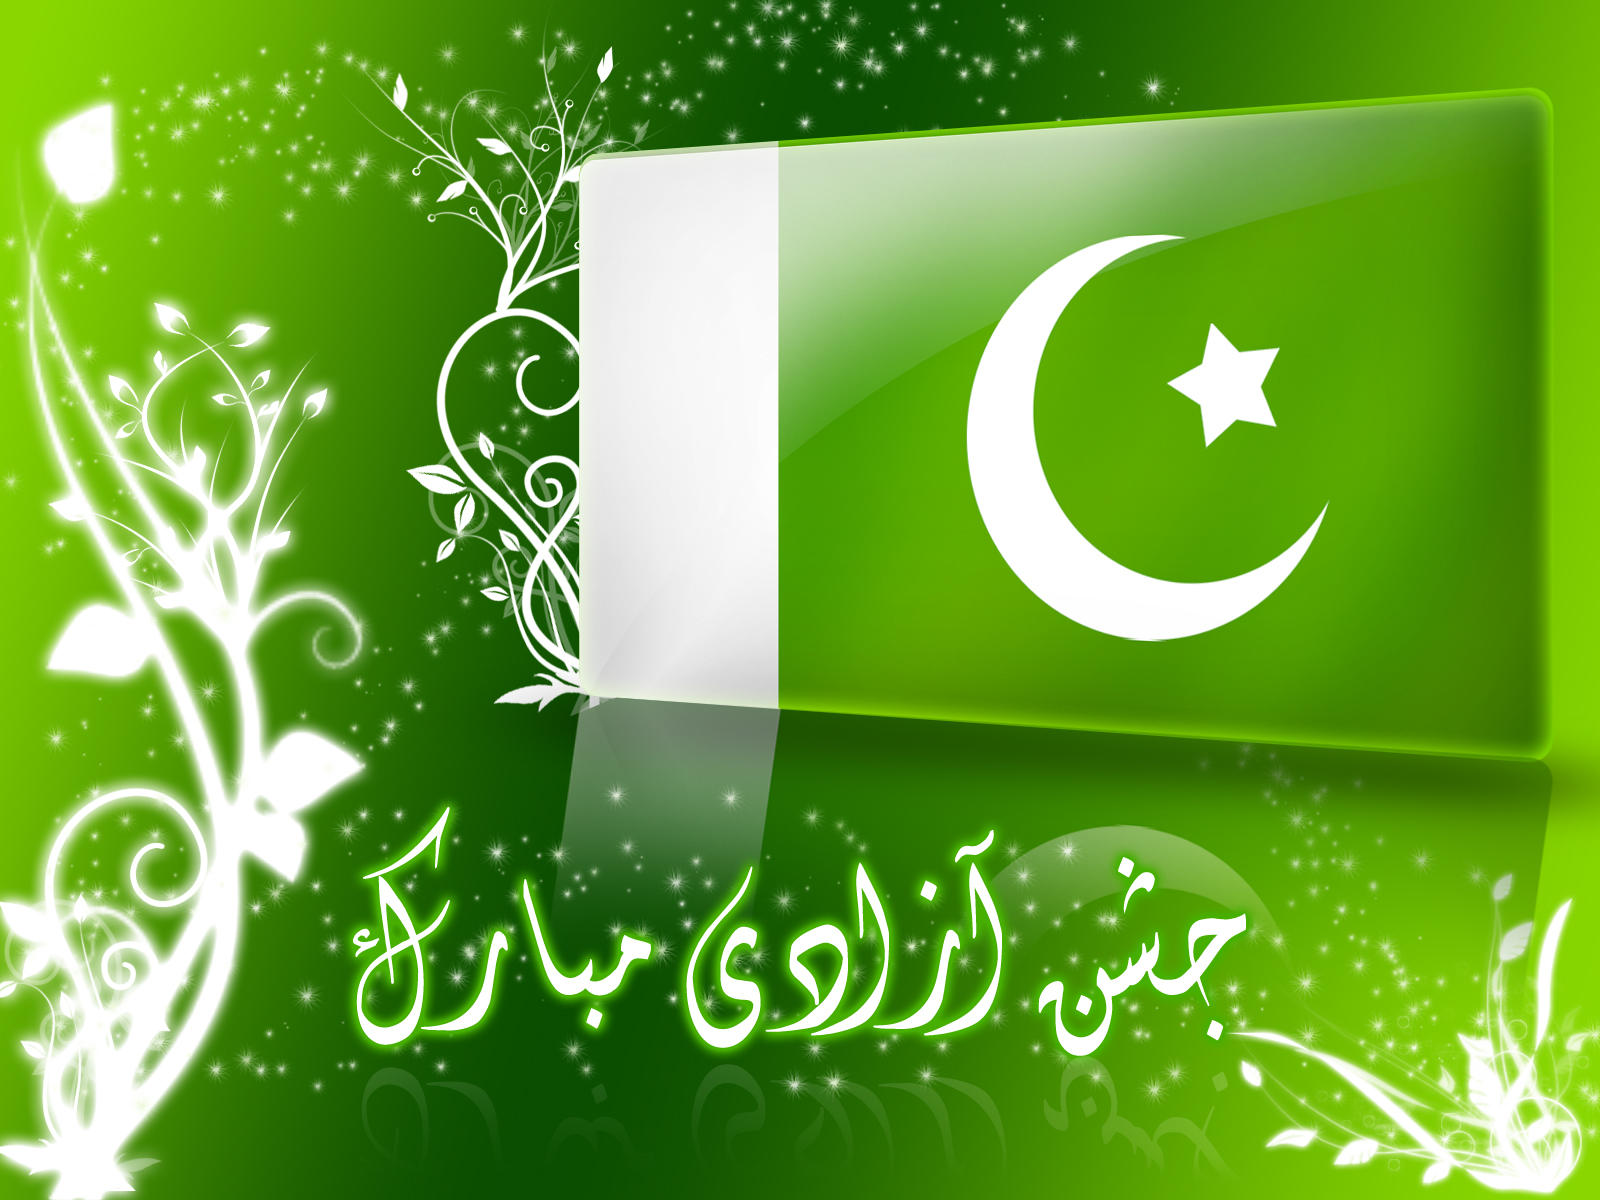 Day Pakistan Cool Dp and Wallpapers for Facebook Wishing 14th August 1600x1200